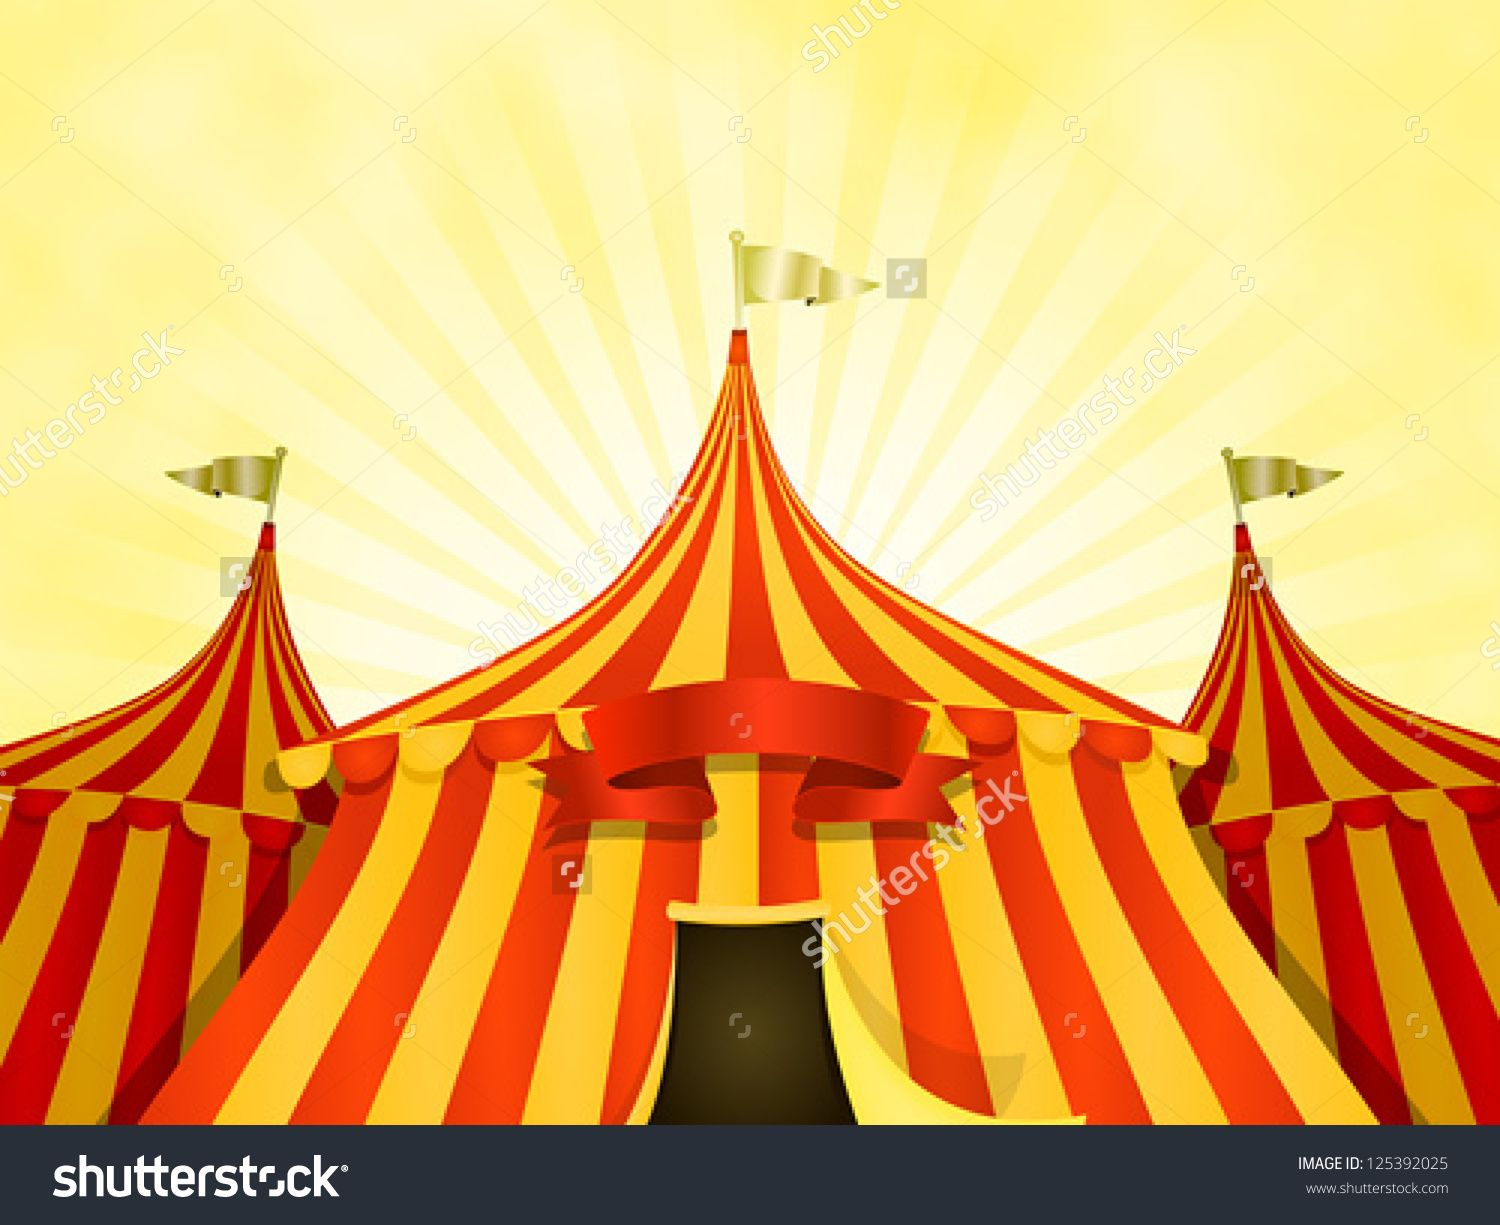 Big Top Circus Background With Banner/ Illustration of cartoon yellow and red big top circus tents background with marquee or banner on a summer sky ... & red door yellow back ground - Google Search | Fixtures/Lighting ...